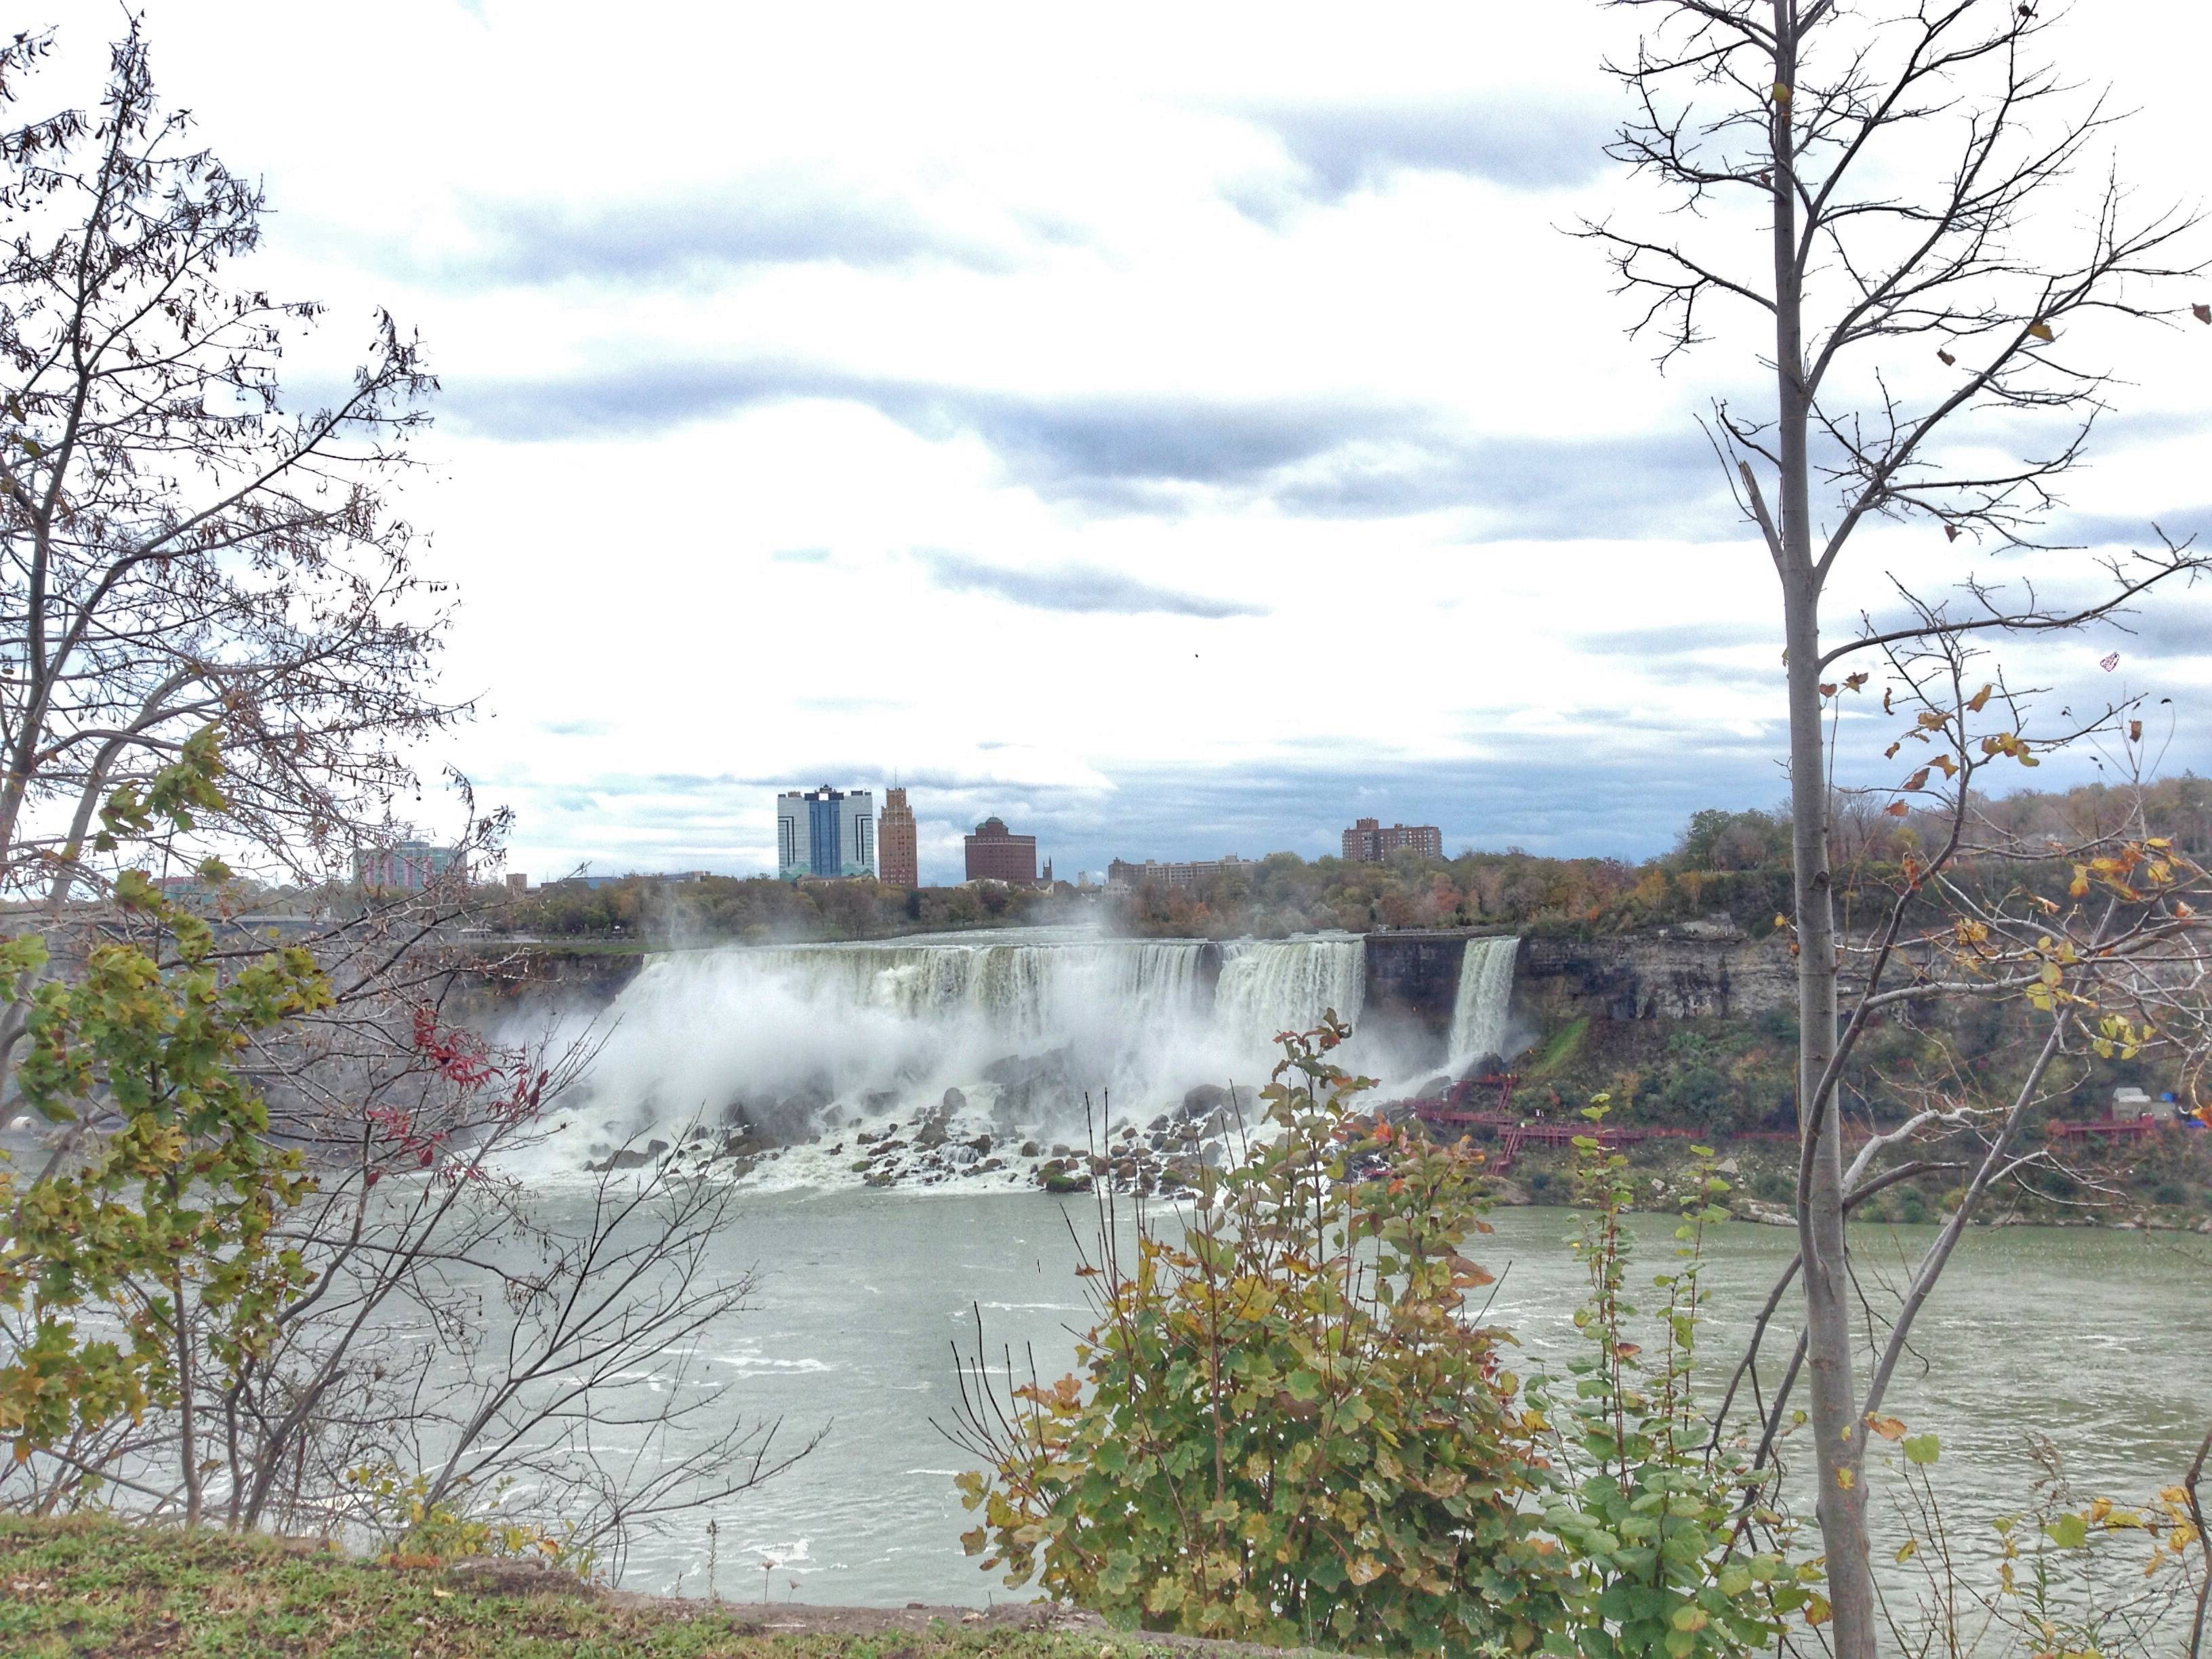 Photo 2: Chutes du Niagara partie canadienne